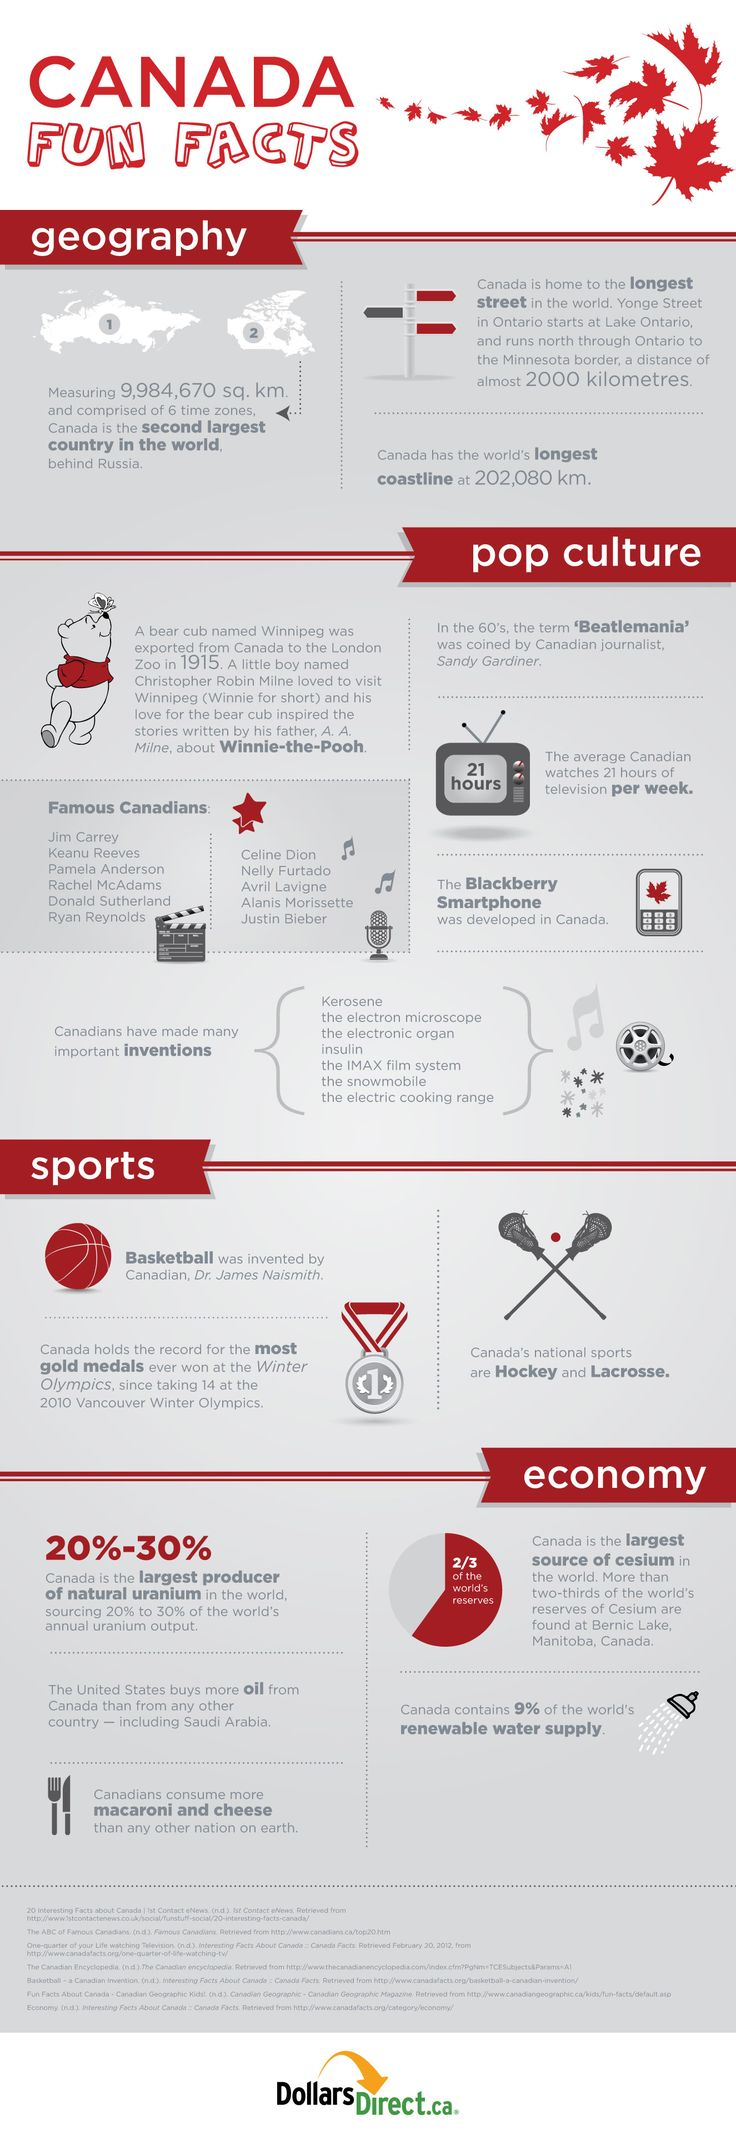 #Canada Fun #Facts #infographic